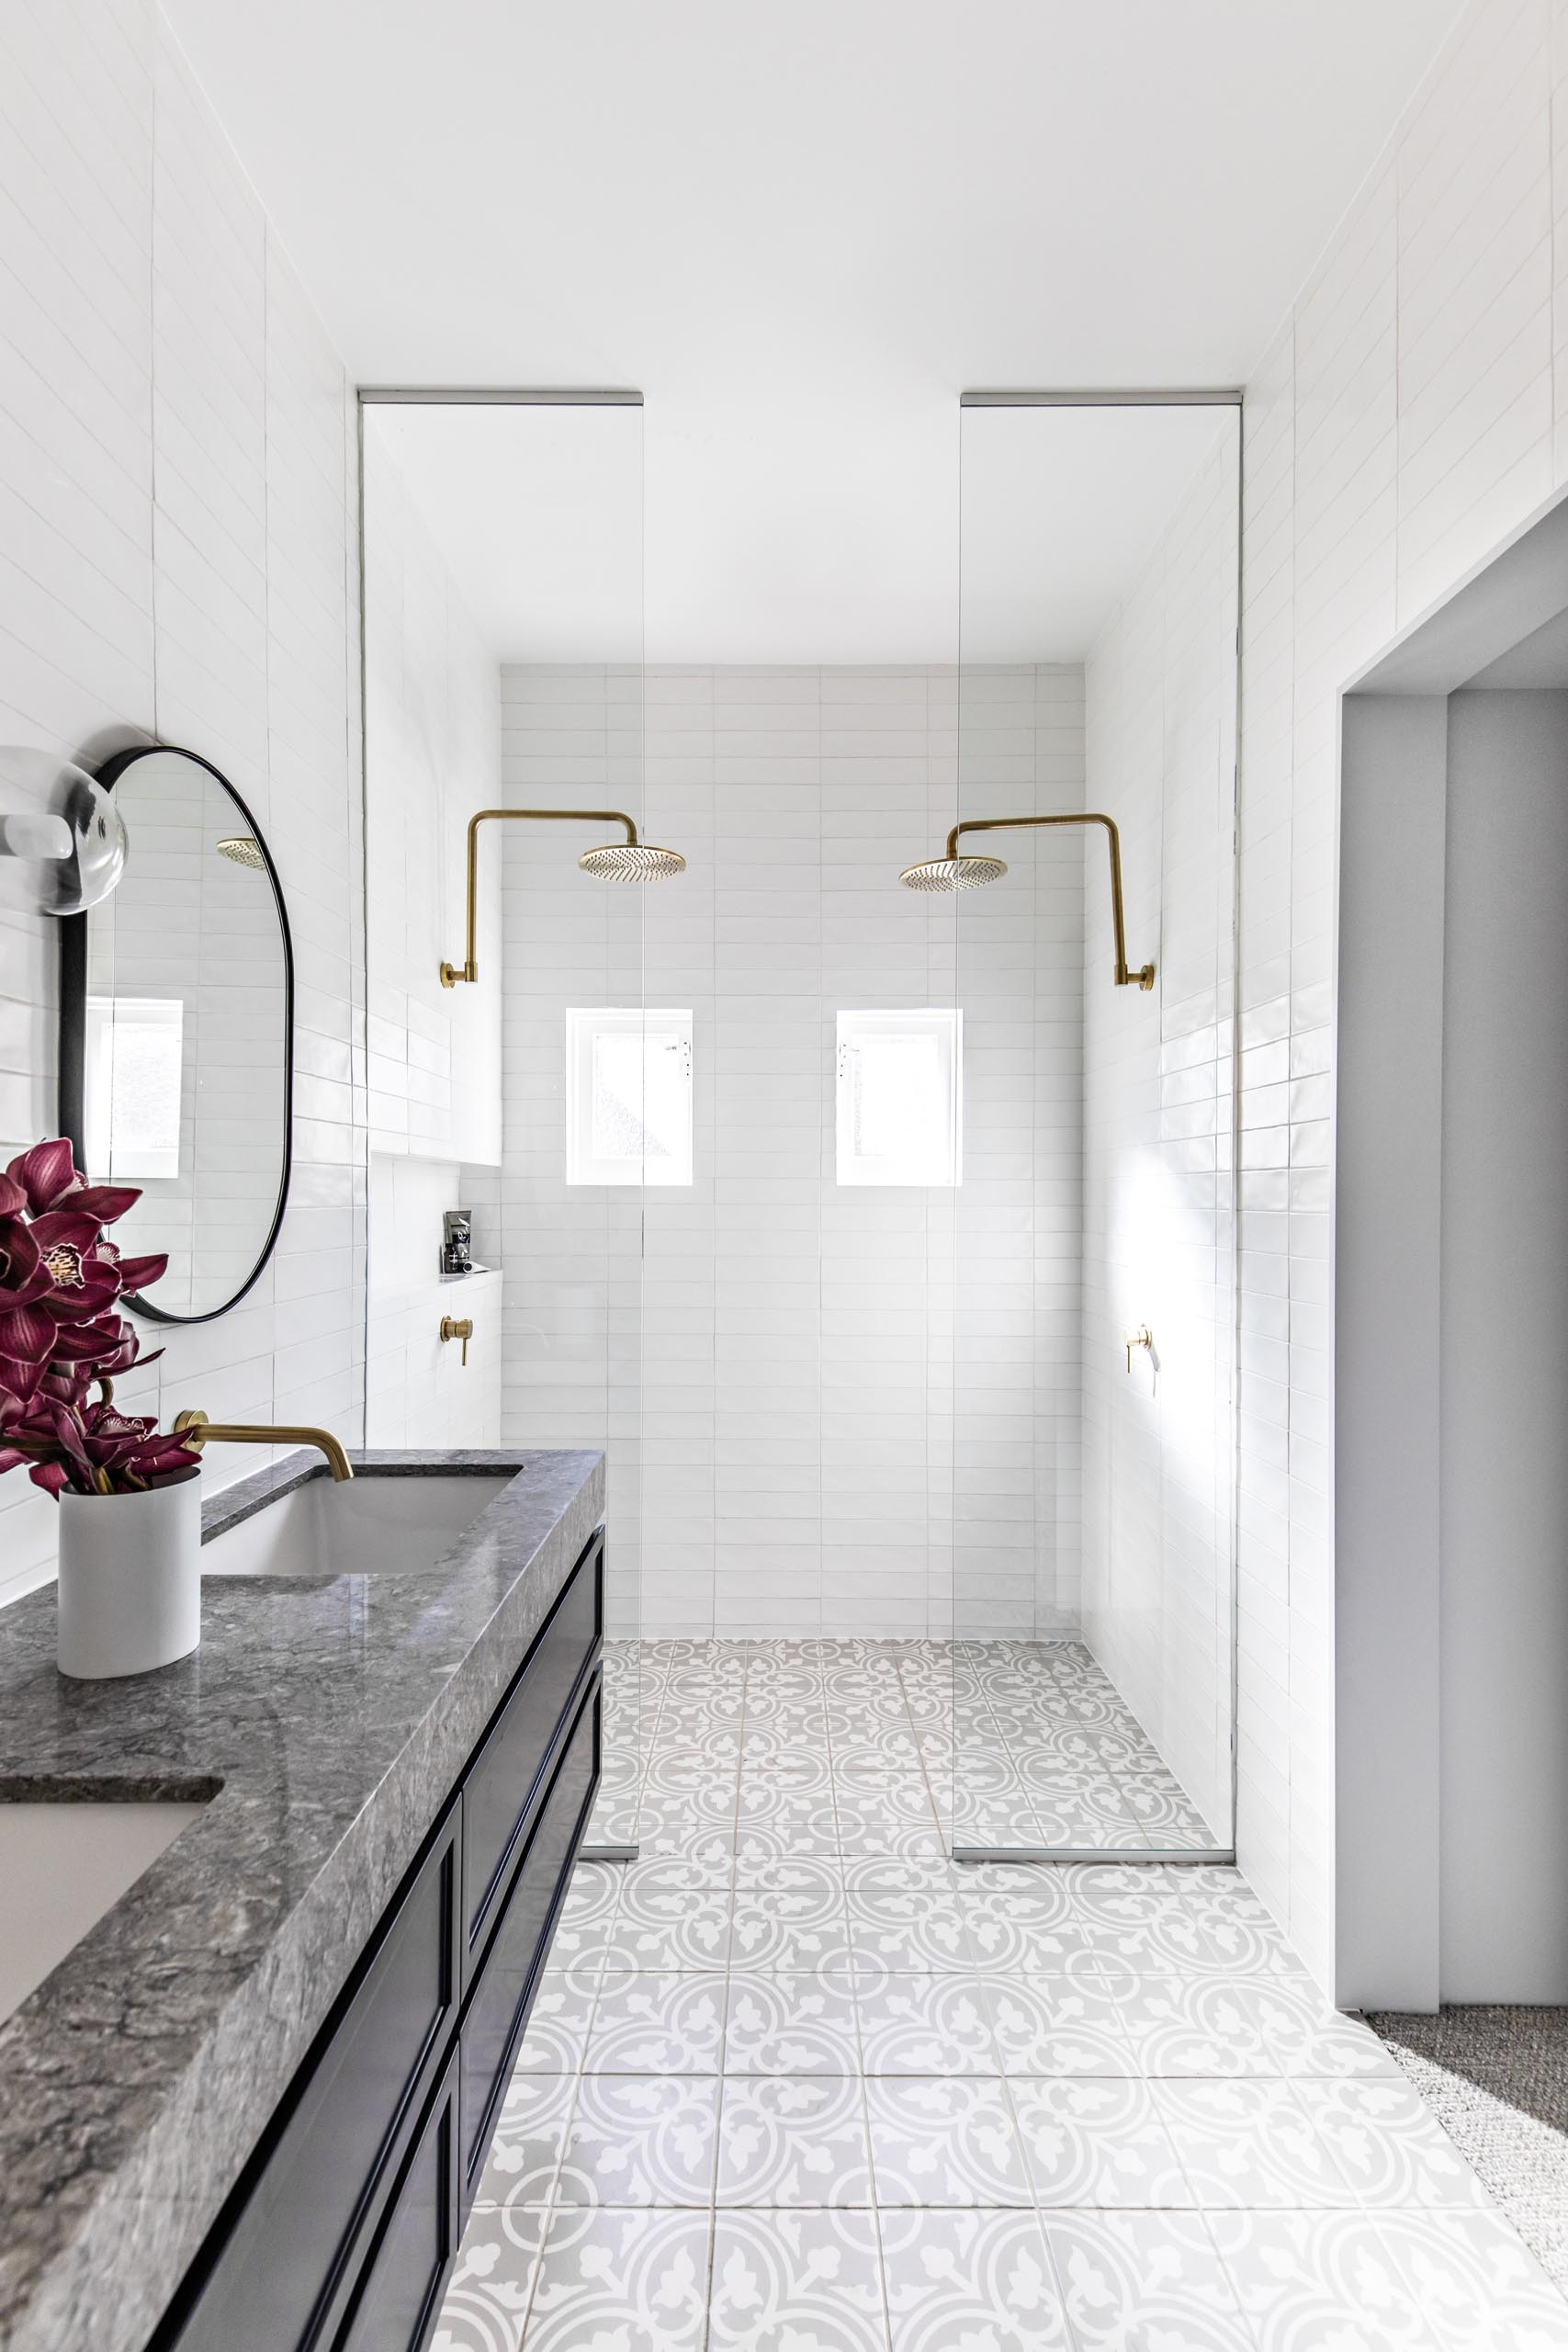 A modern bathroom with patterned floor tiles, a floating black vanity topped with grey stone, white subway tiles that cover the walls, oval black-framed mirrors, brass hardware, and floor-to-ceiling glass shower screens.